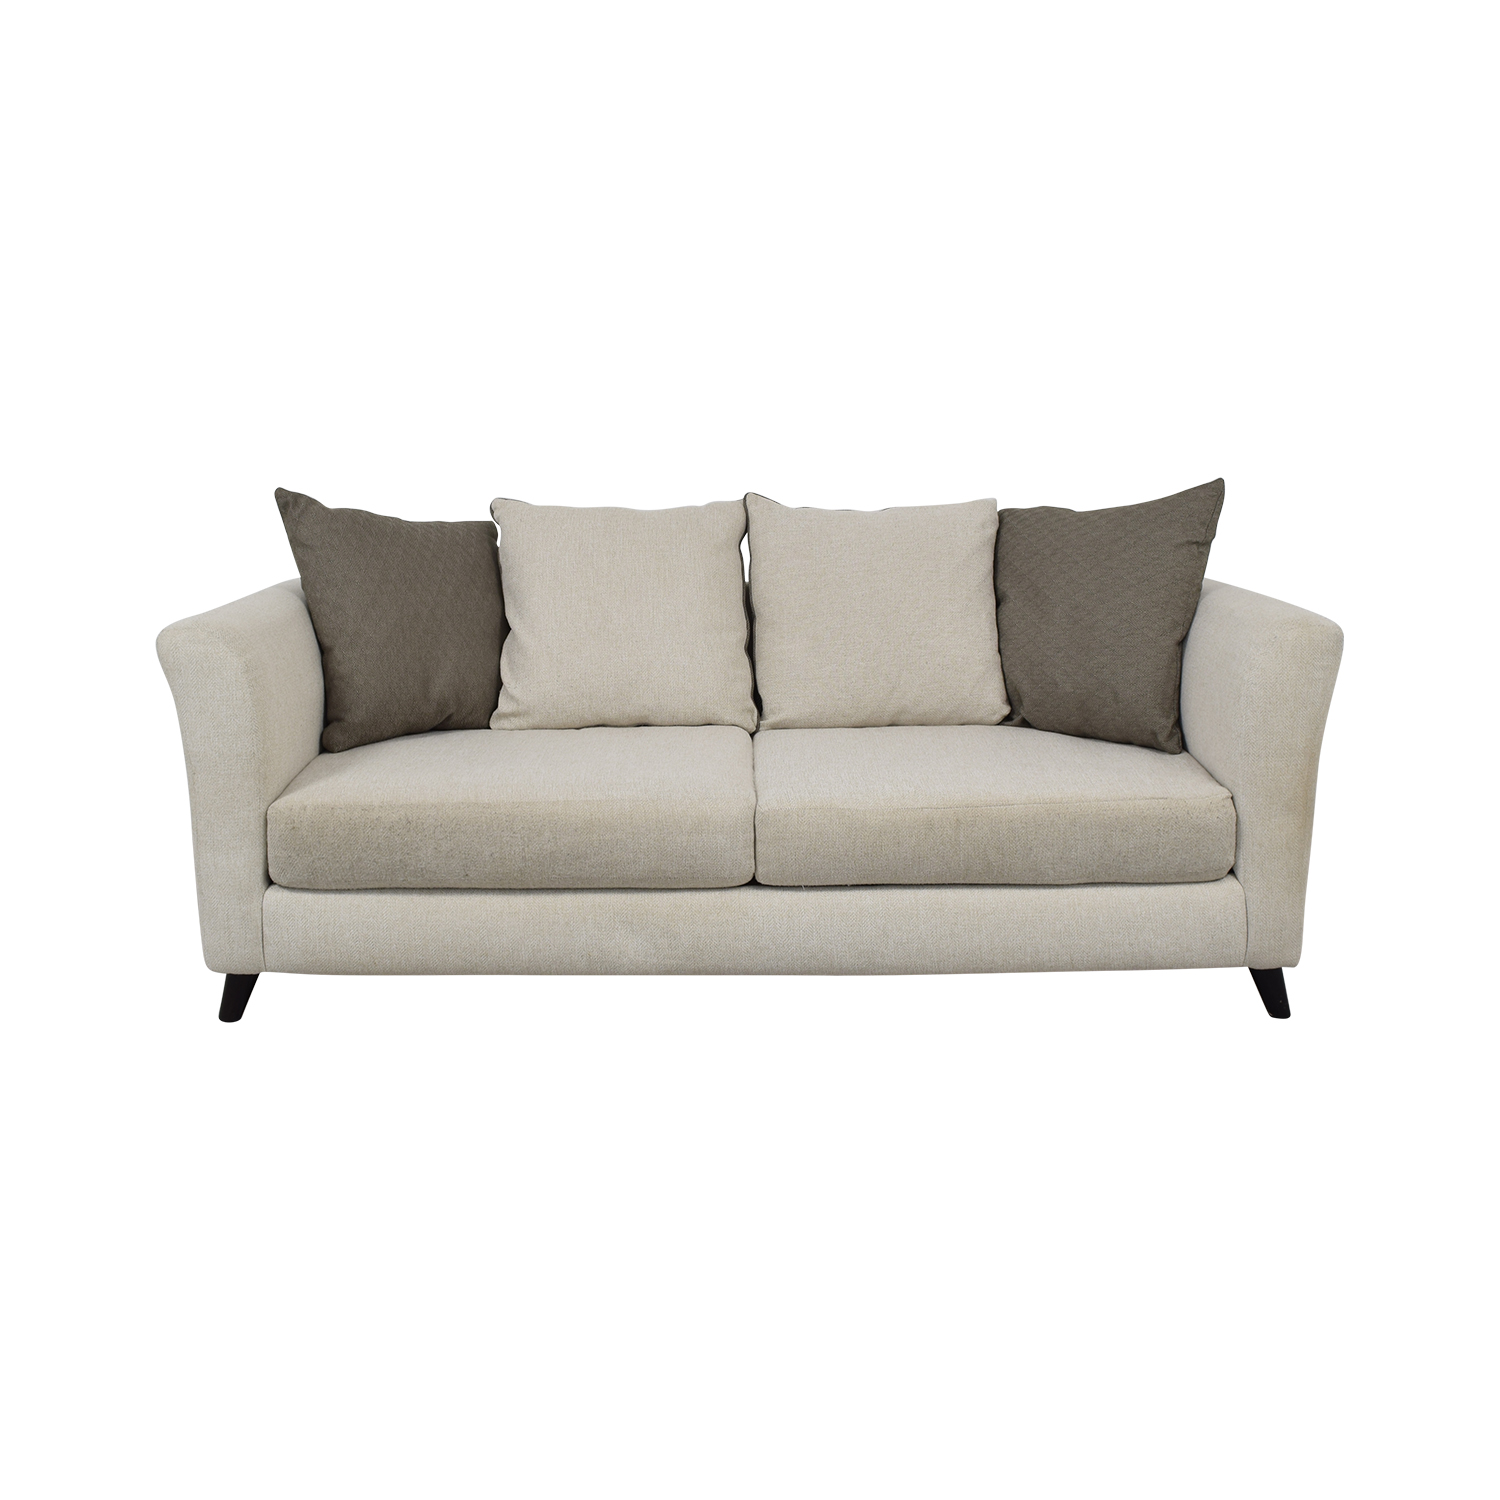 shop Raymour & Flanigan Plush Modern Sofa Raymour & Flanigan